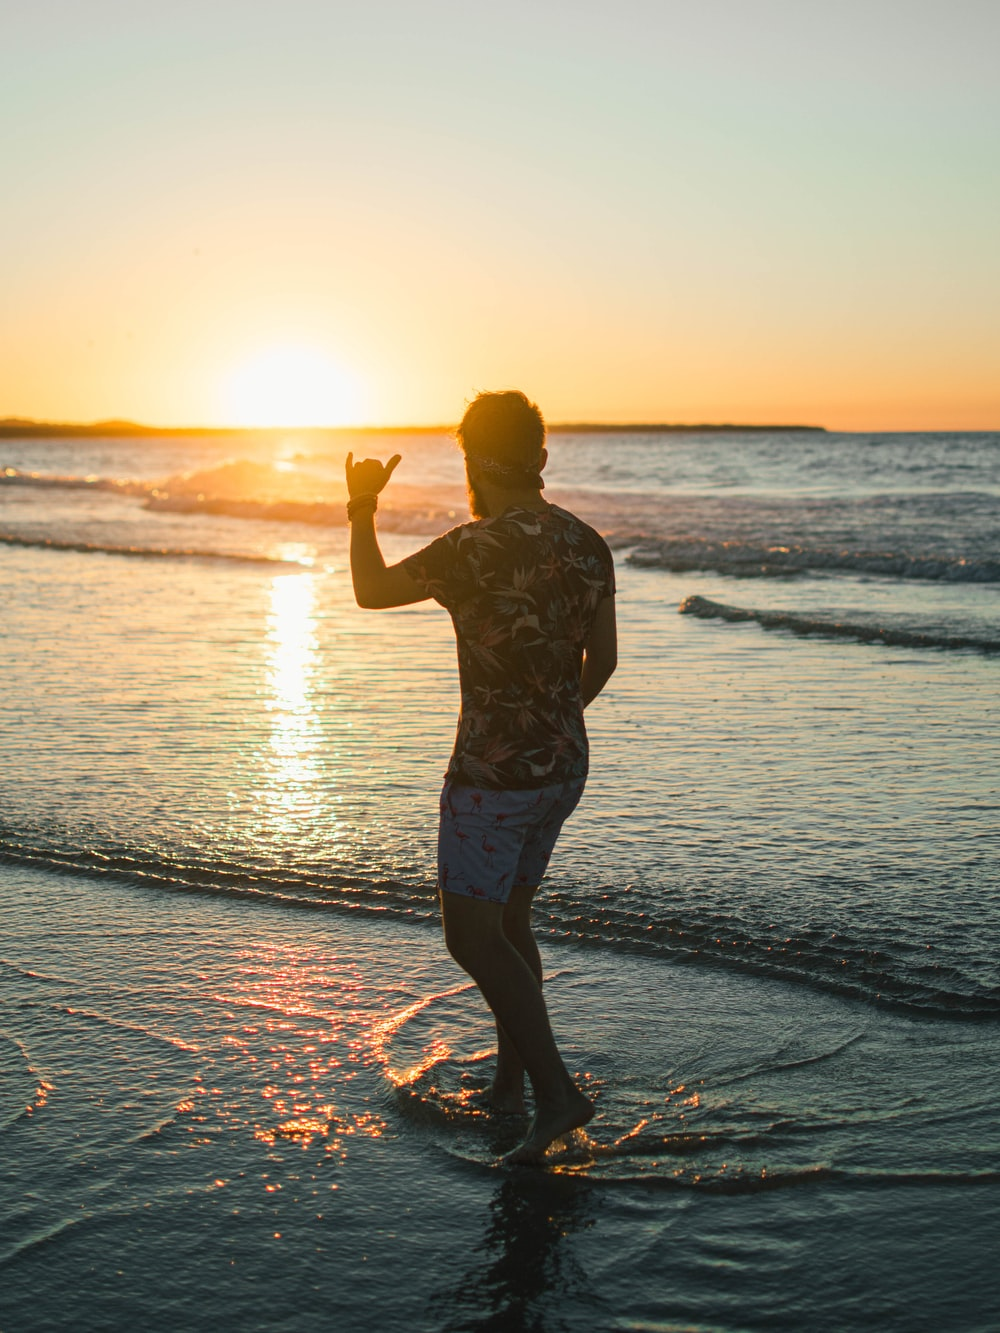 man in black and white floral shirt standing on beach during sunset